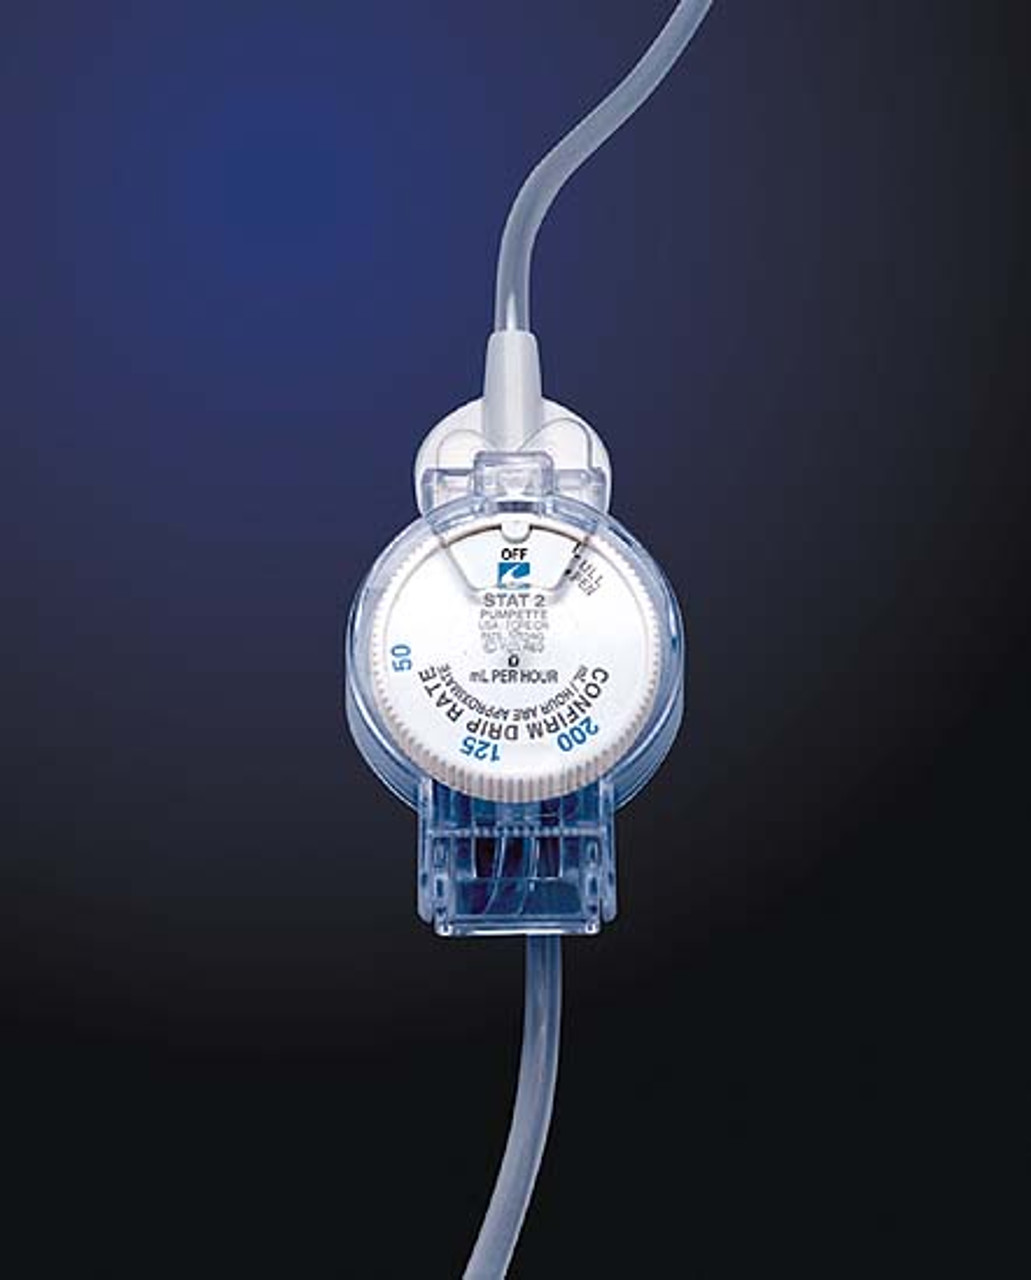 STAT 2® IV Gravity Flow Controller by Conmed